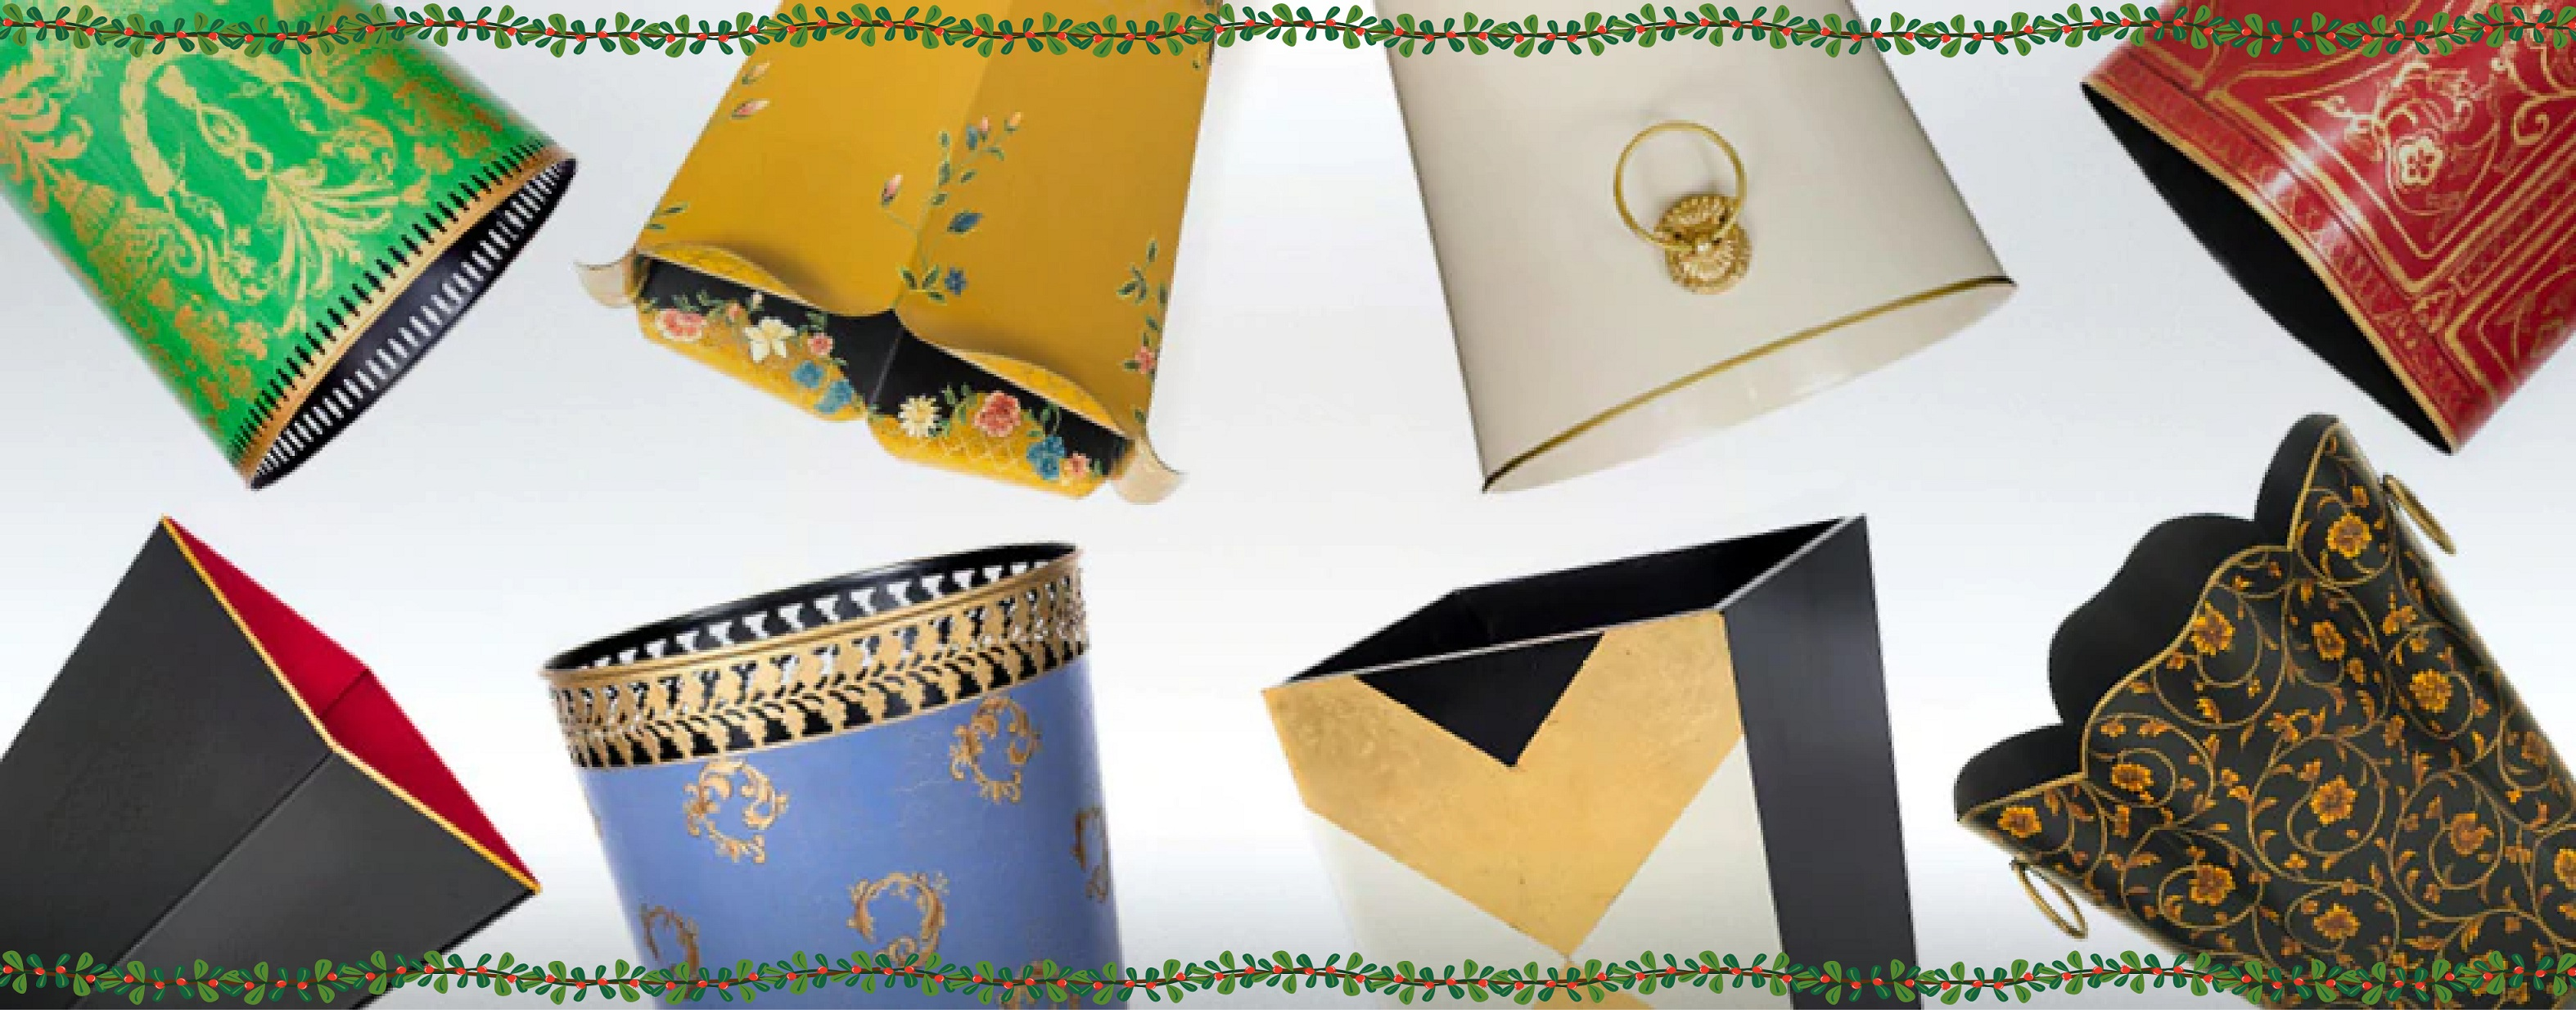 Decorative fine traditional english decor Waste Paper Bins Baskets with Brass Trims and Handles   Must Have Bins